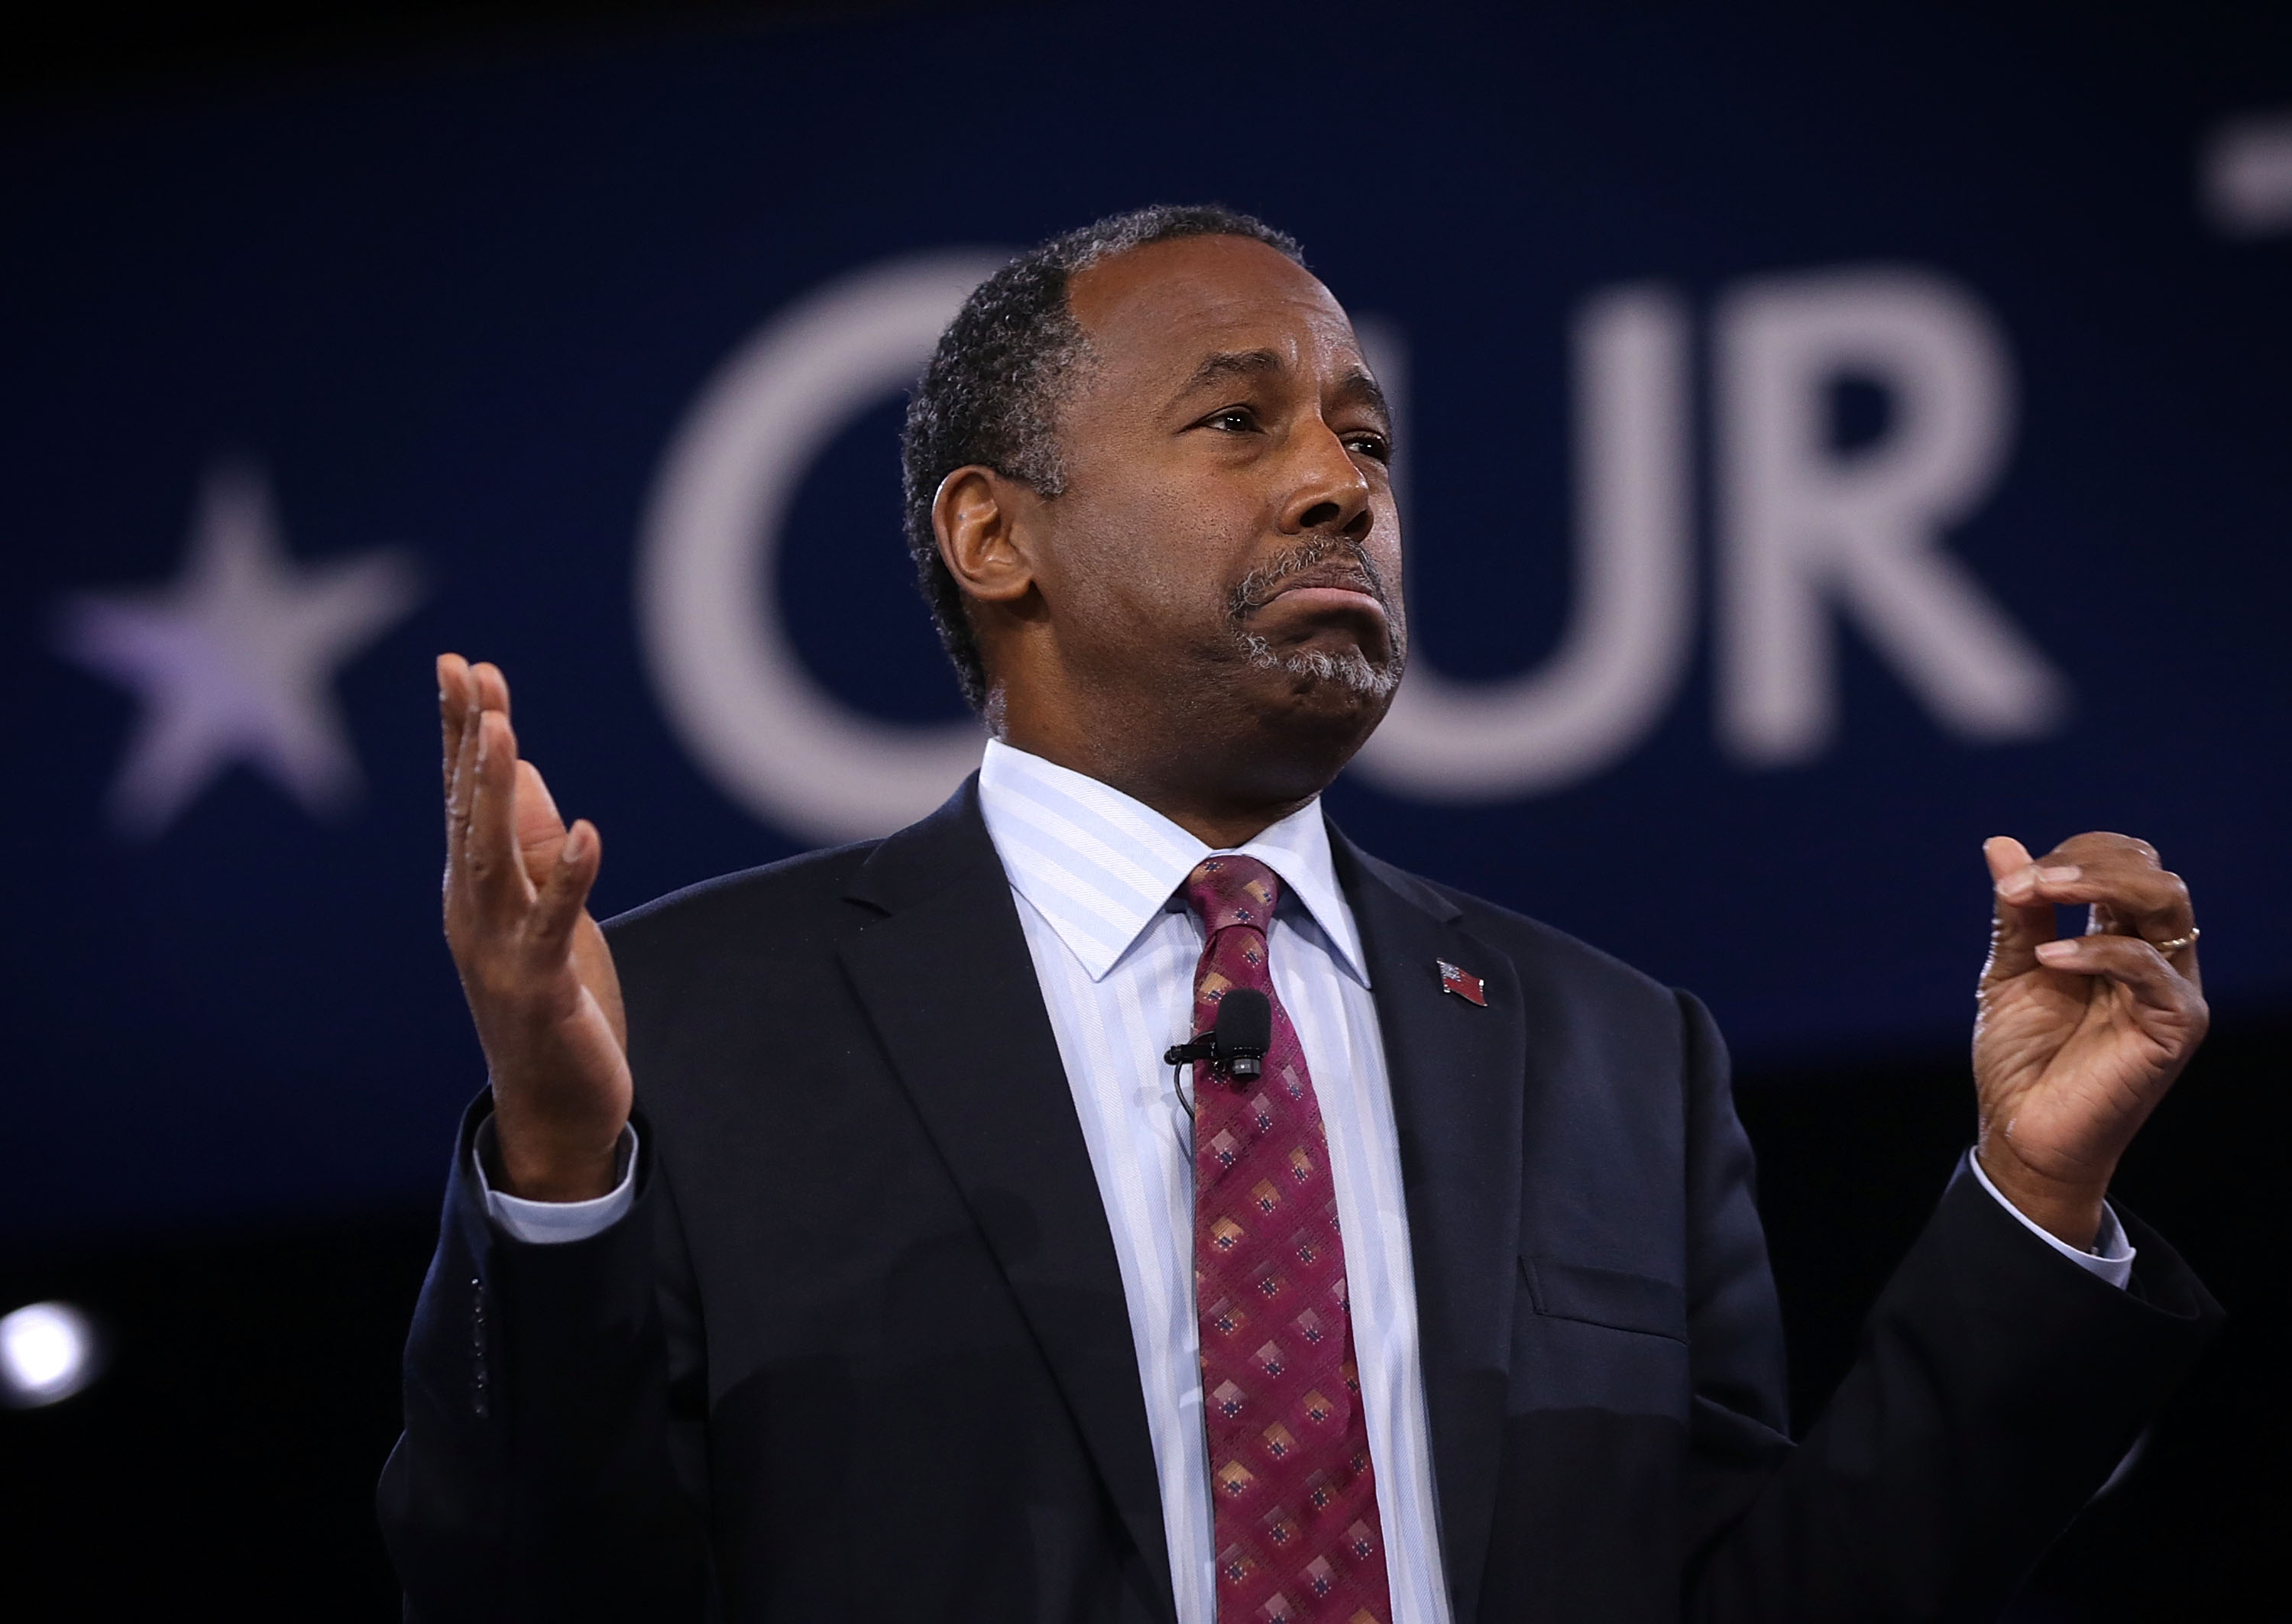 Republican presidential candidate Ben Carson speaks during CPAC 2016 March 5, 2016 in National Harbor, Maryland.